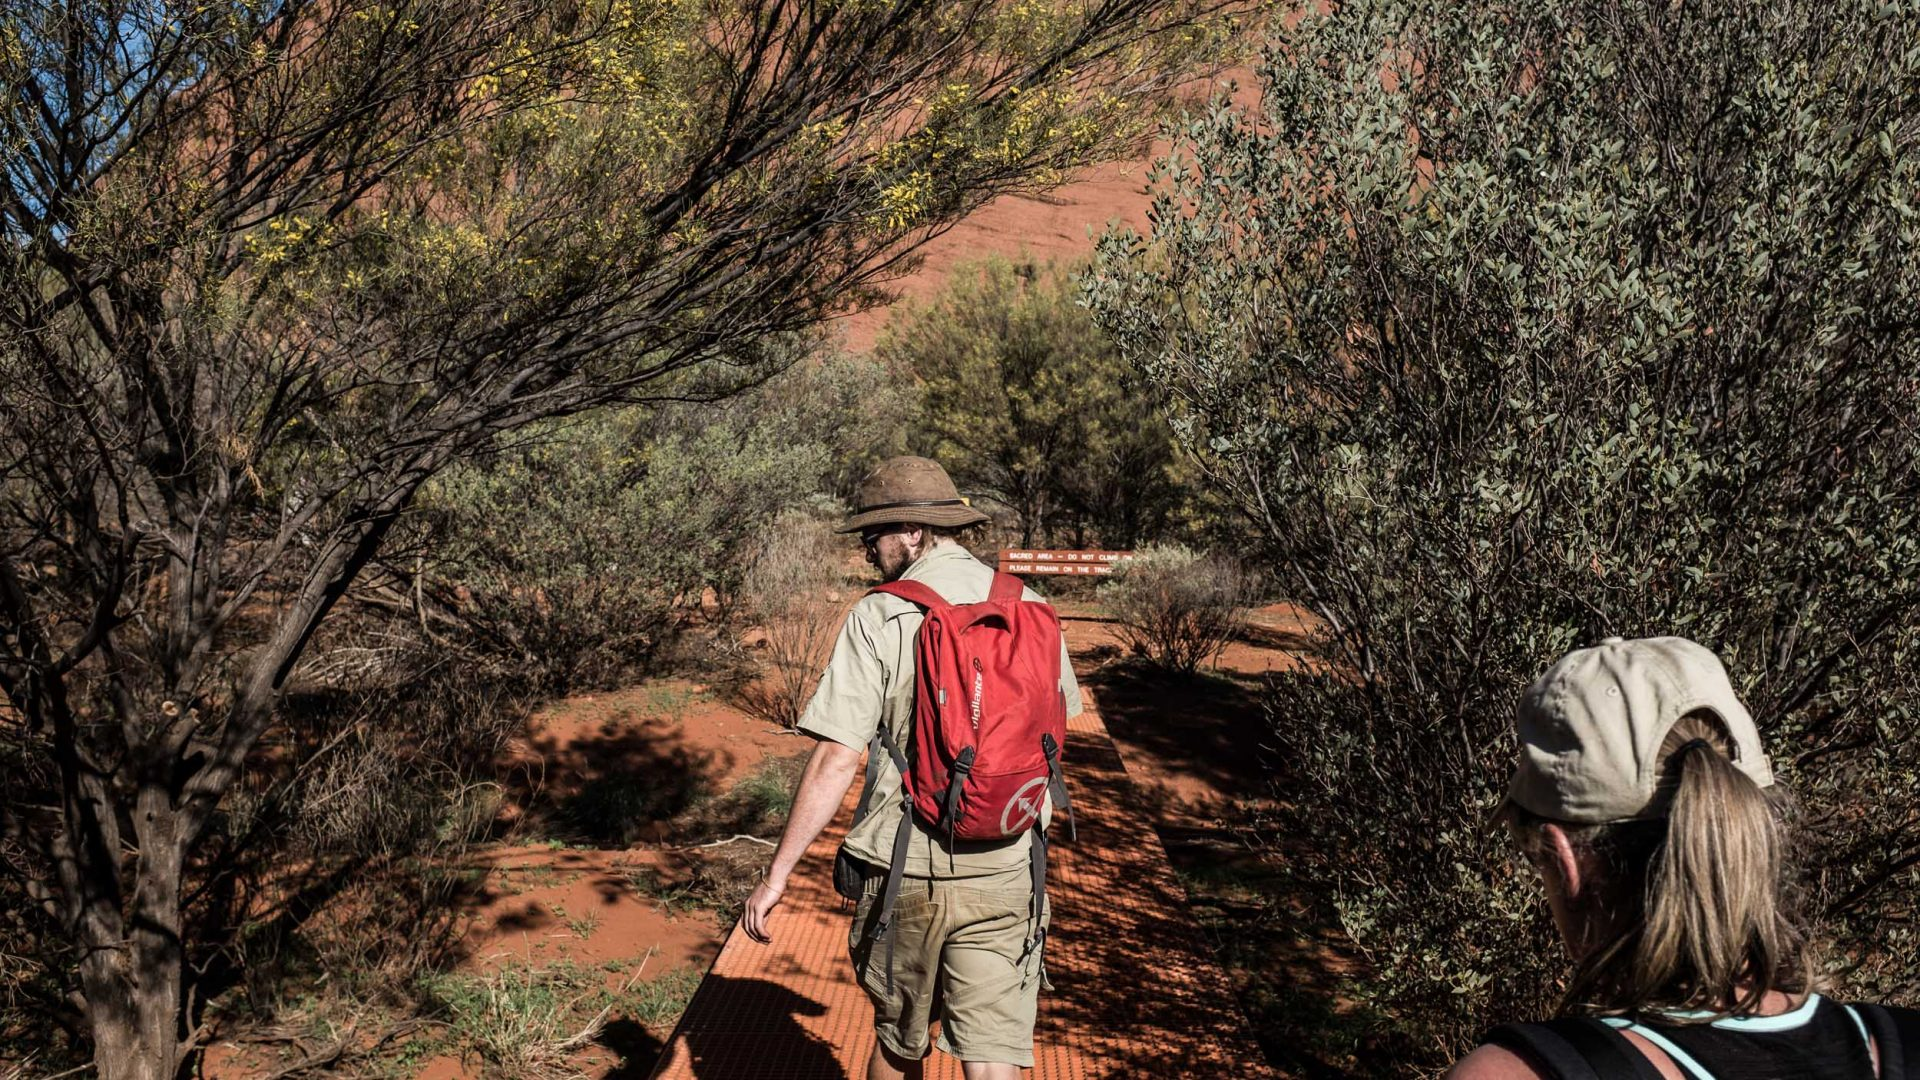 Justing leading a tour at Kata Tjuta.